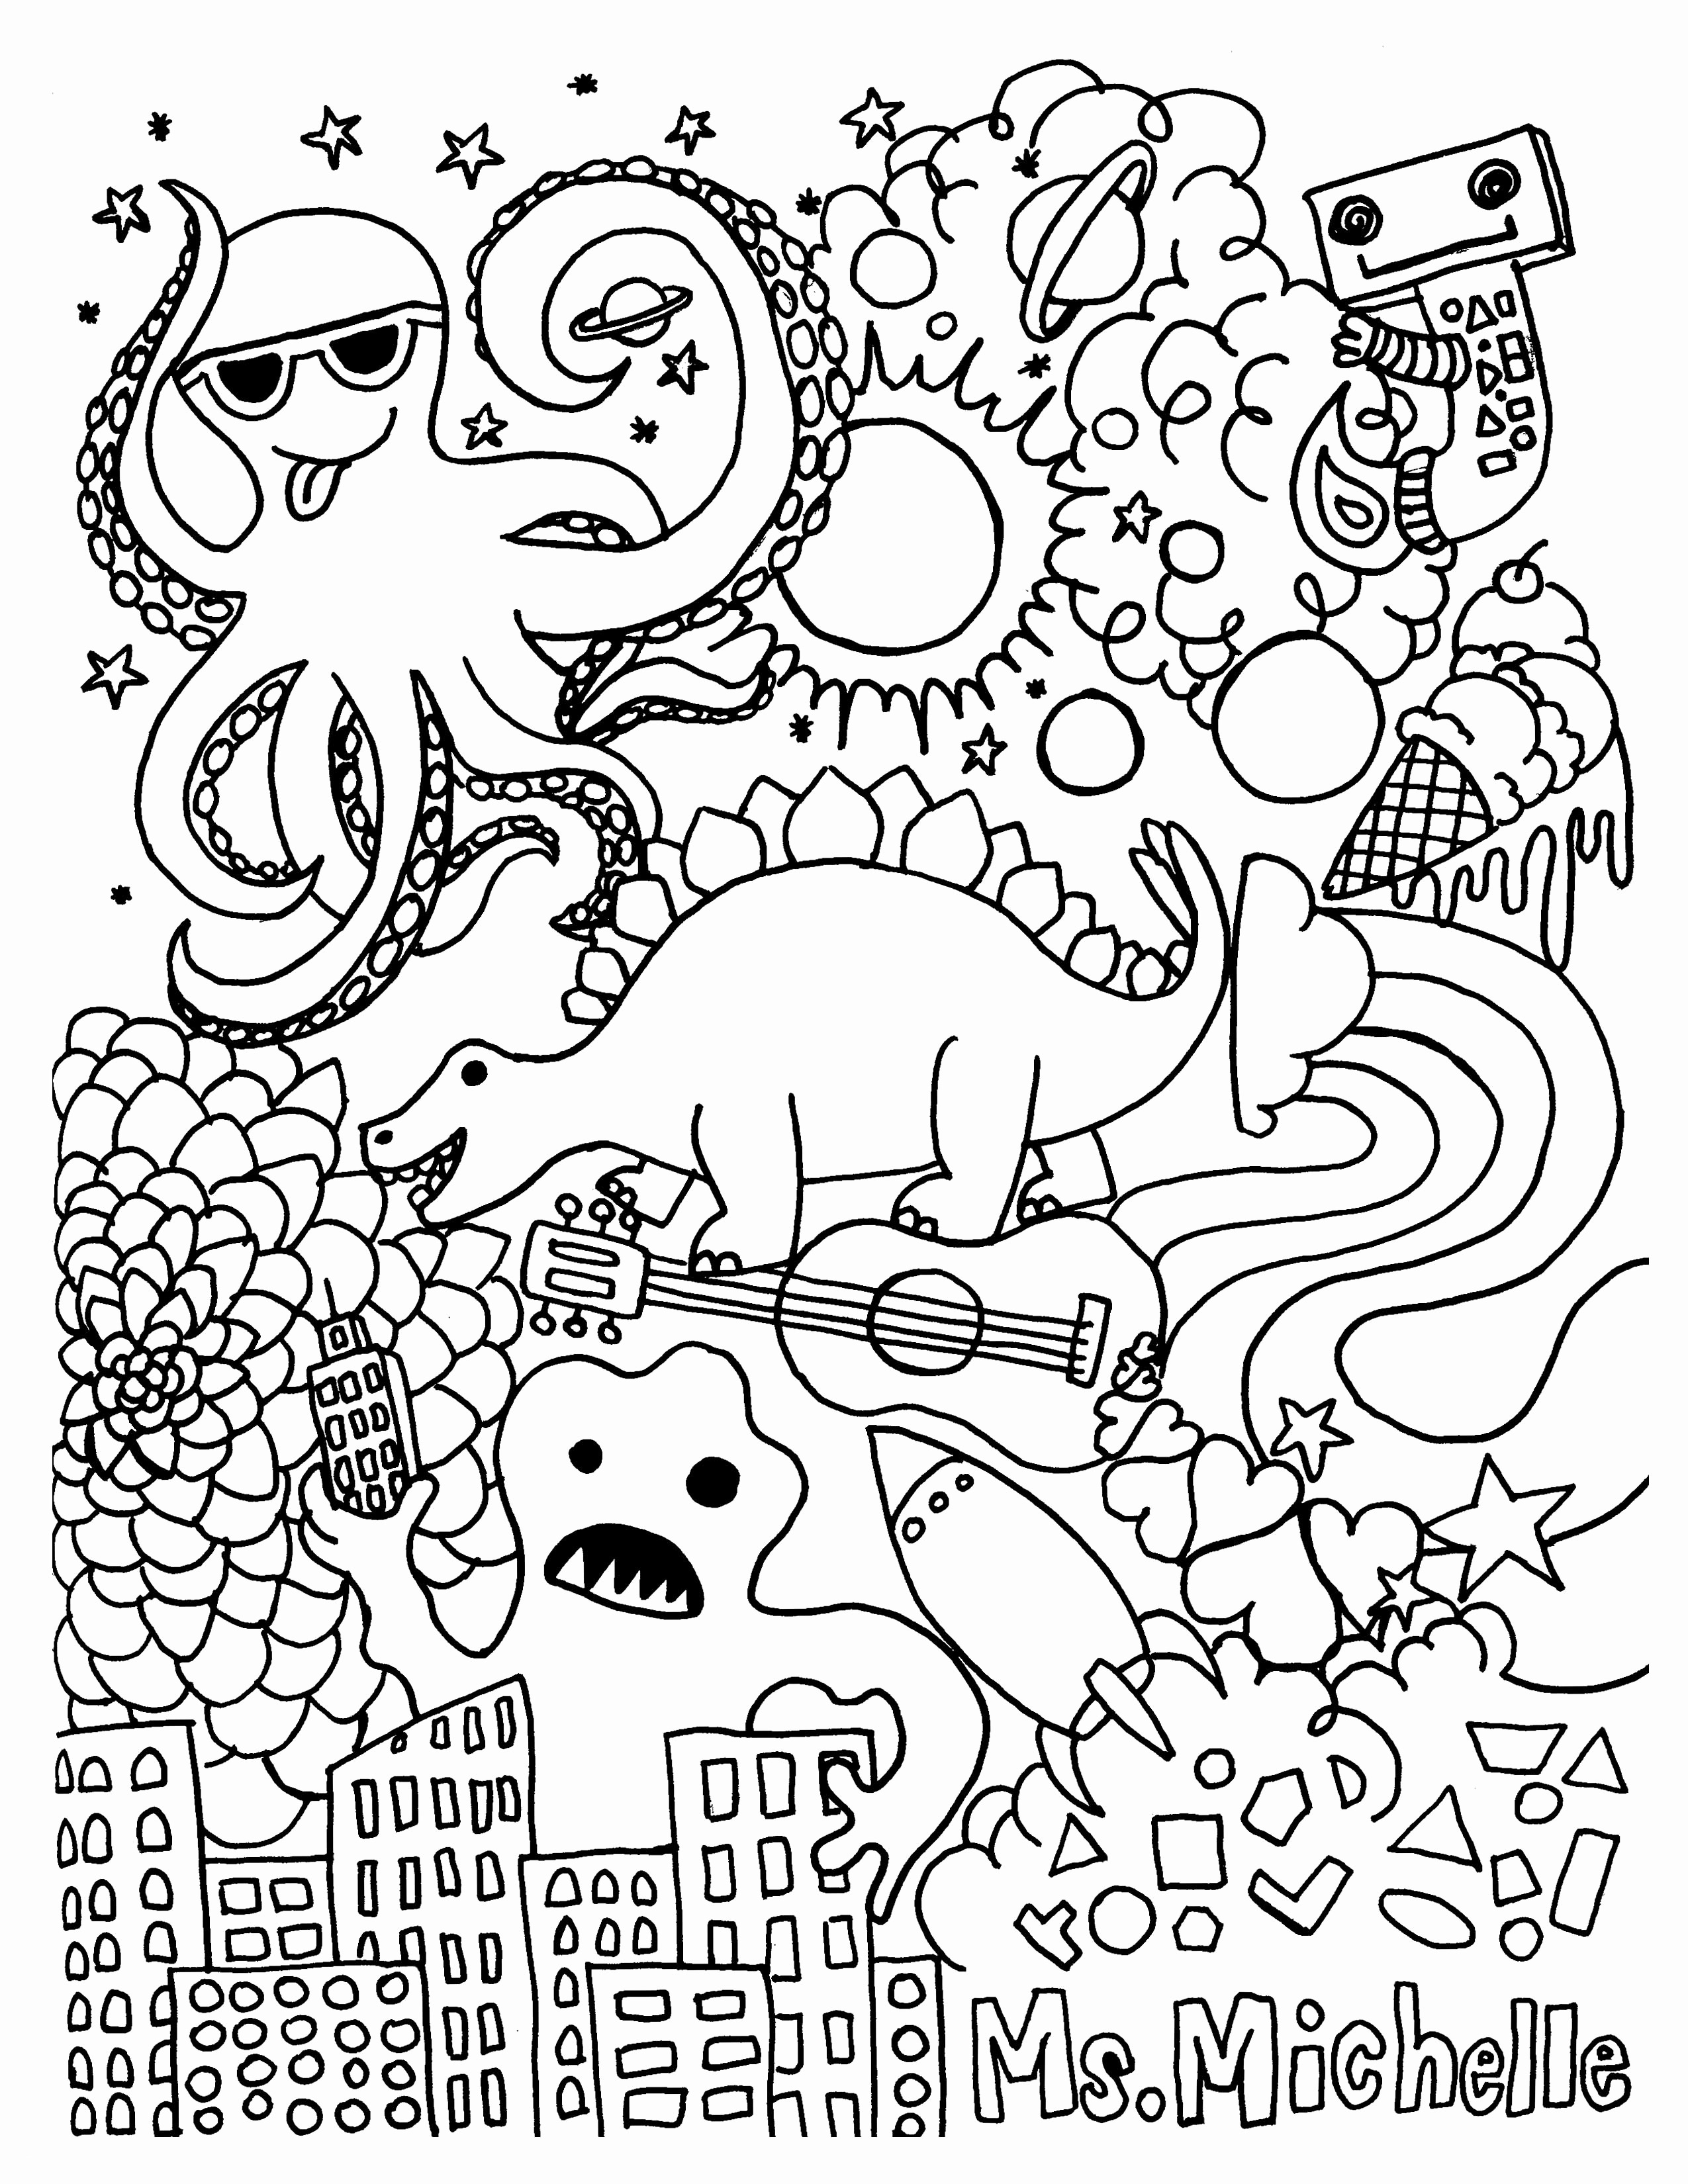 free coloring pages for halloween Download-Vampire Coloring Pages Free Coloring Pages for Halloween Unique Best Coloring Page Adult Od Kids 17-a